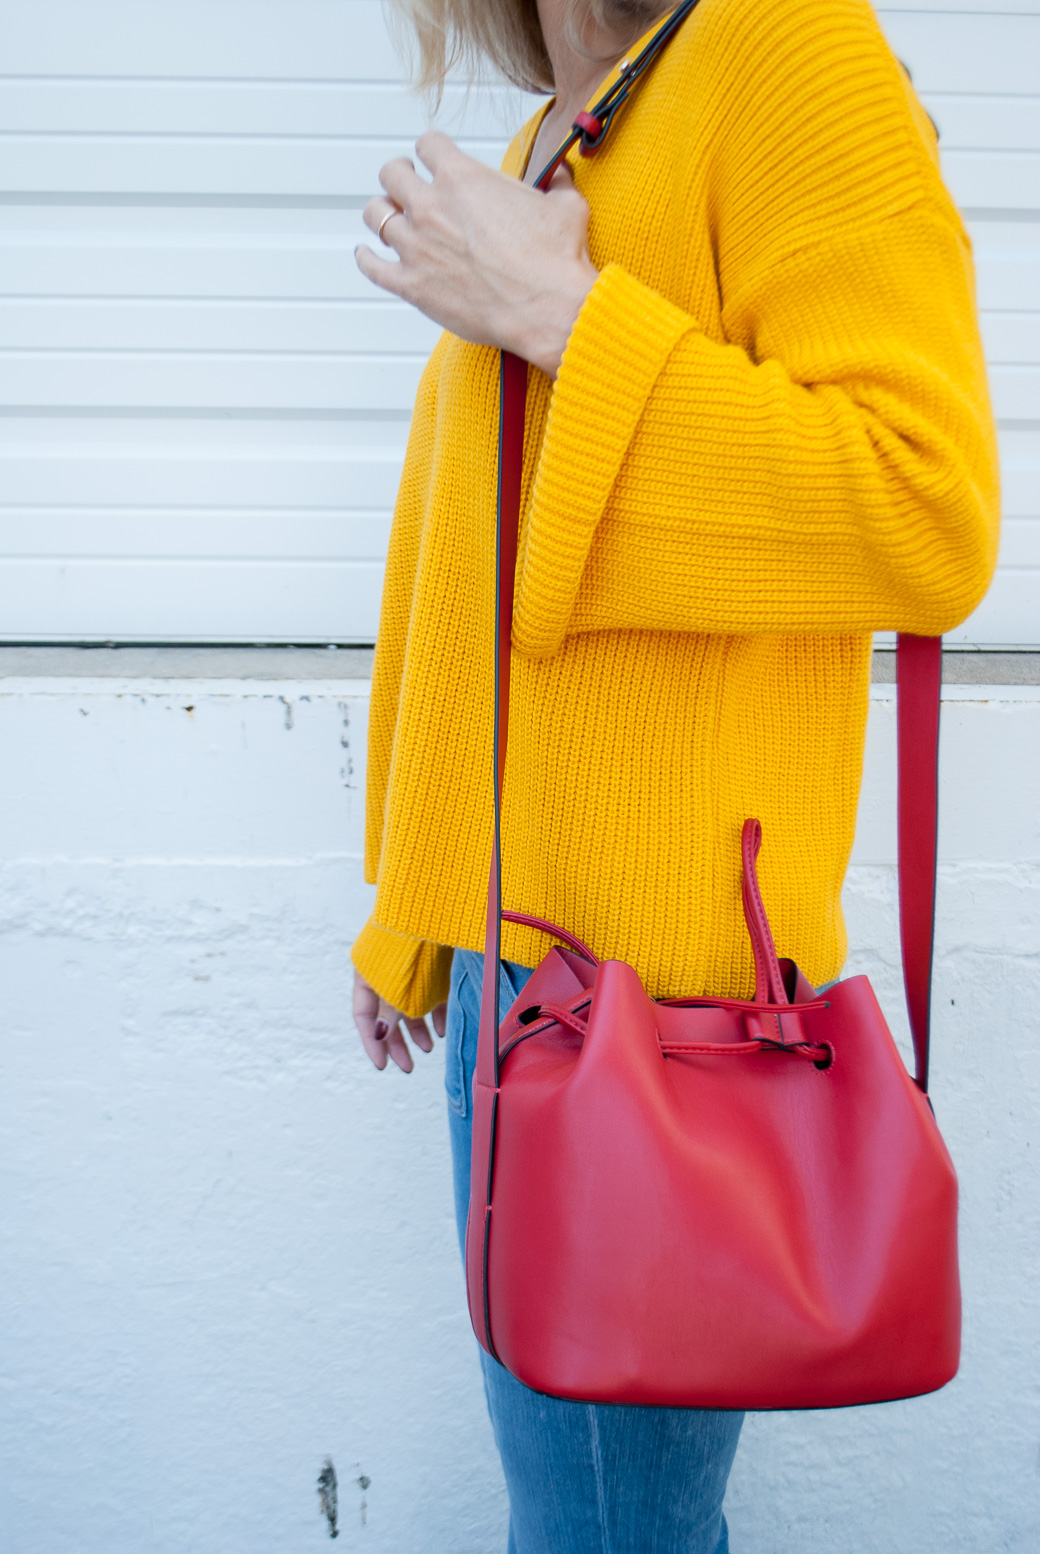 marigold sweater and a red bag